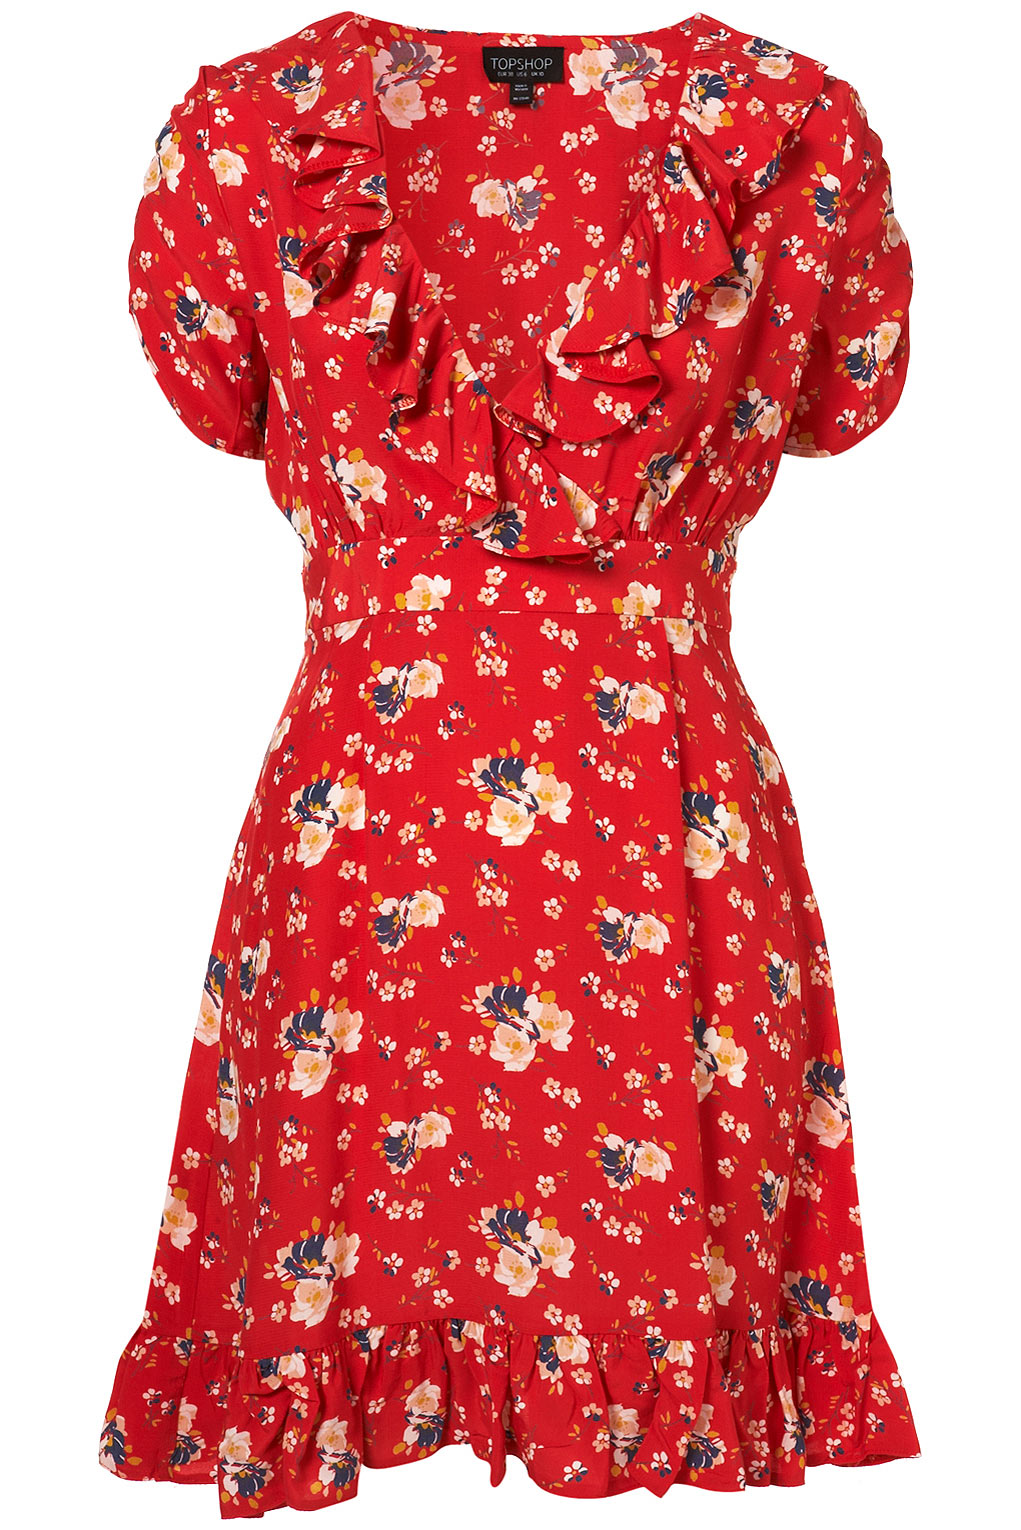 Red Spring Meadow Print Ruffle Dress - Gift Ideas